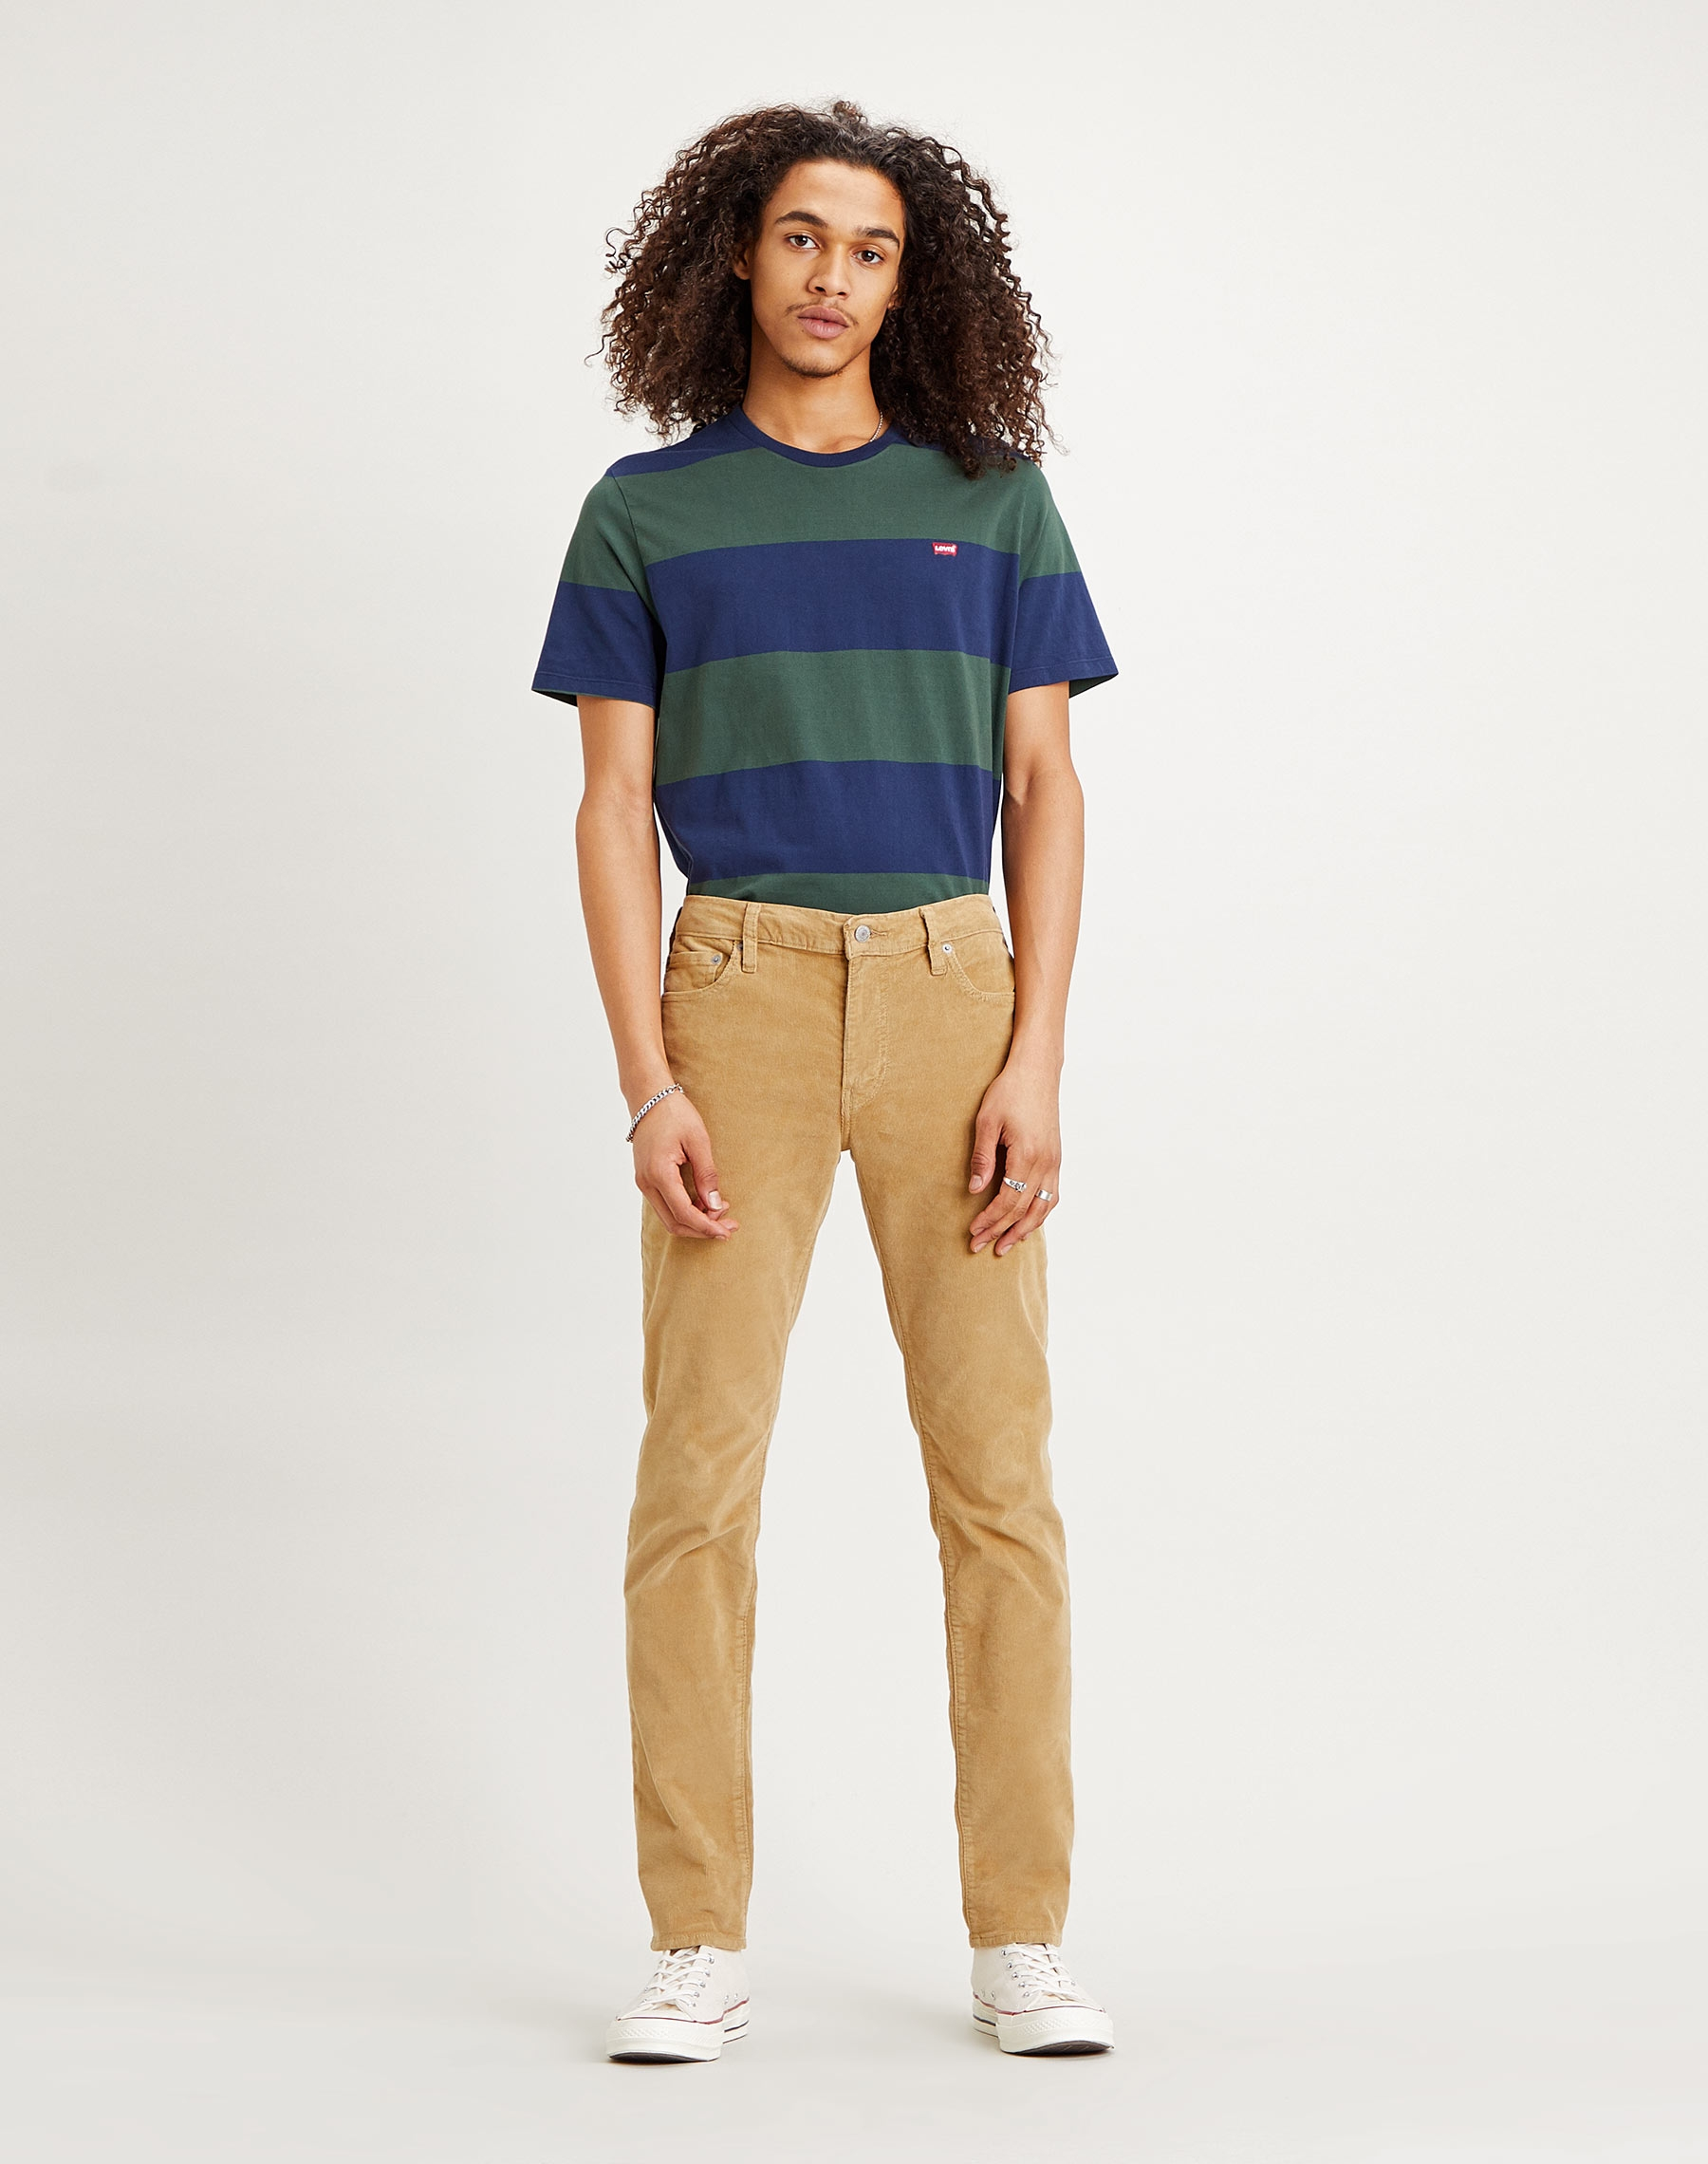 Levi's 511 slim pantalons texans d'home 04511-4749 de pana color beix